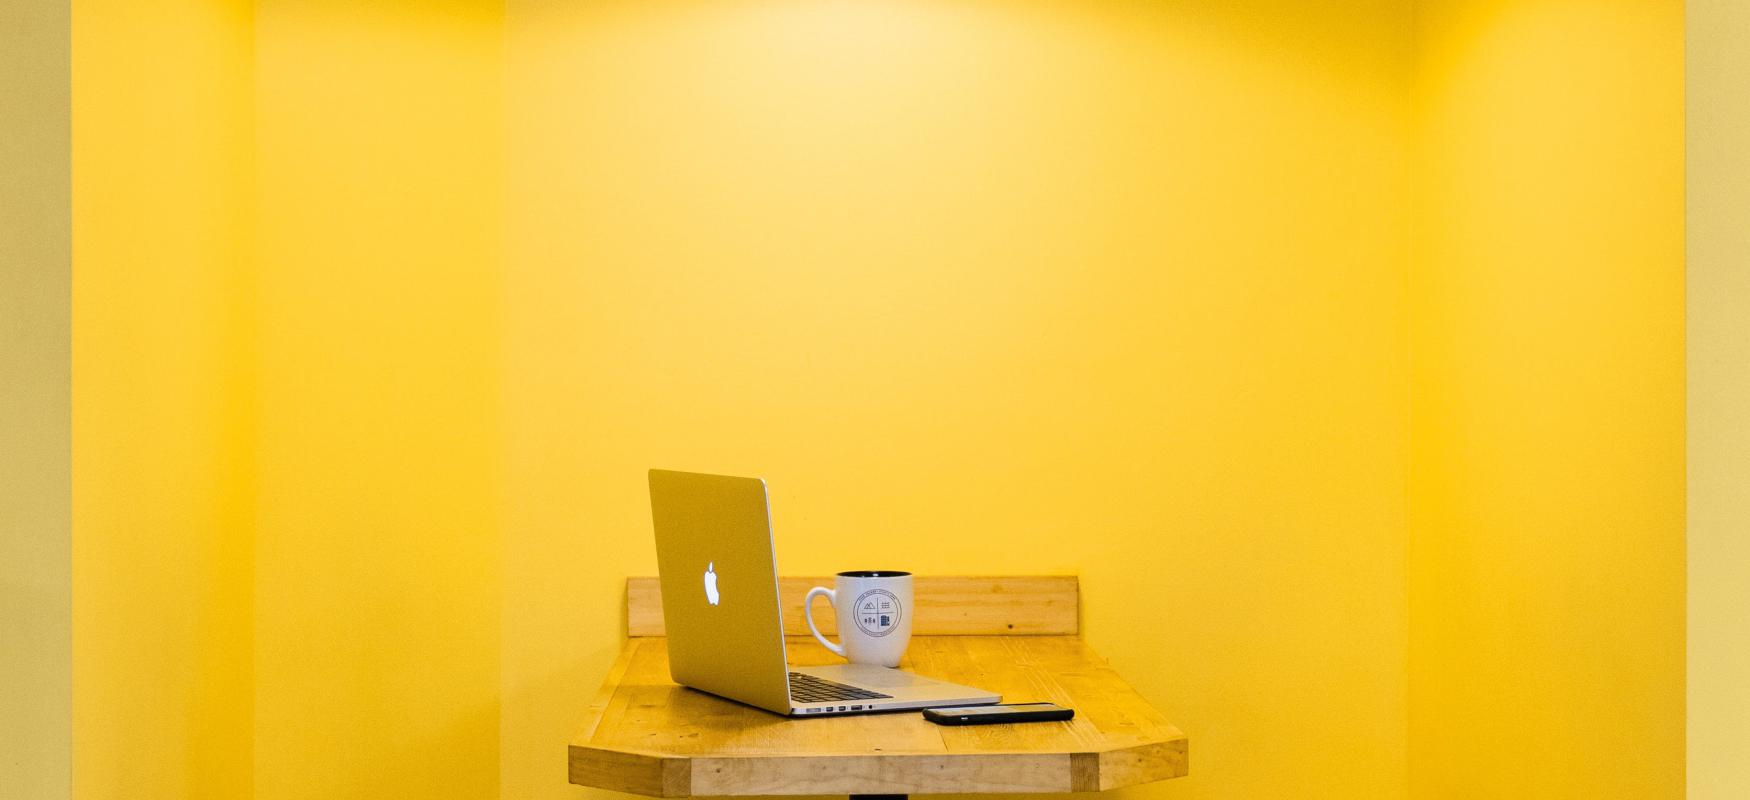 Booth with two benches and a table with a laptop on top. Yellow wall.